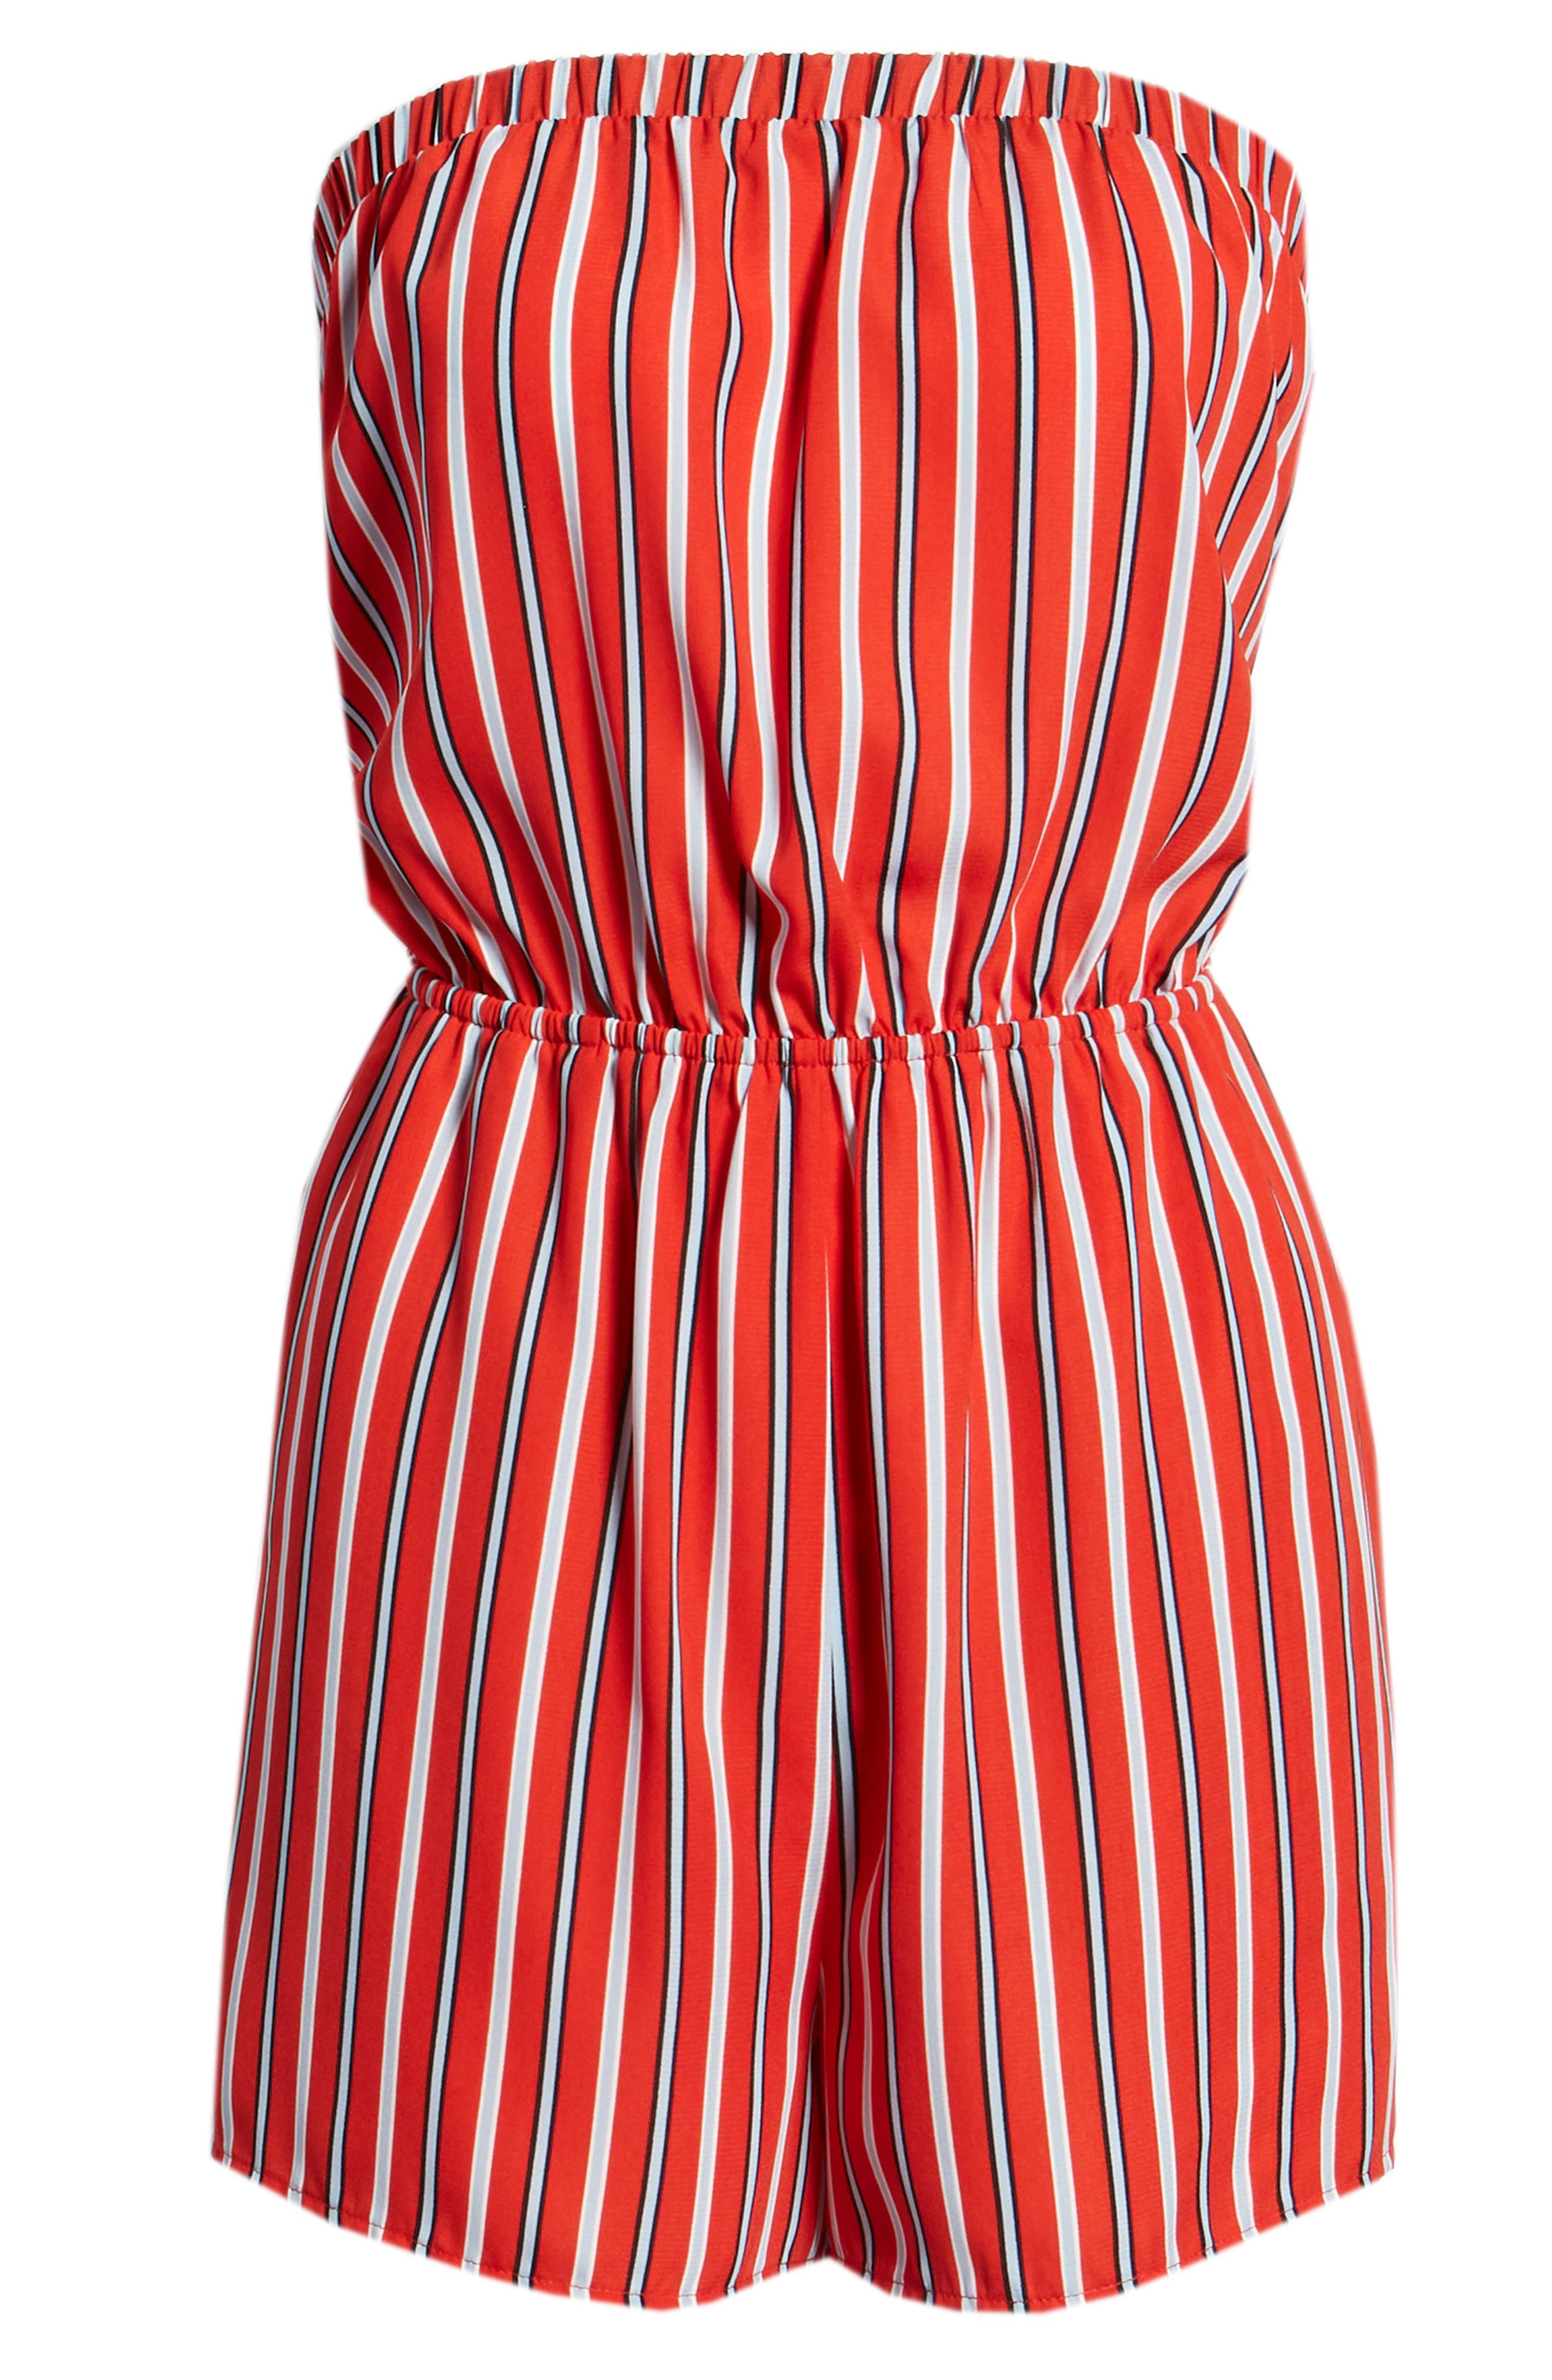 Strapless Tie Back Romper,                             Alternate thumbnail 7, color,                             Candy Red